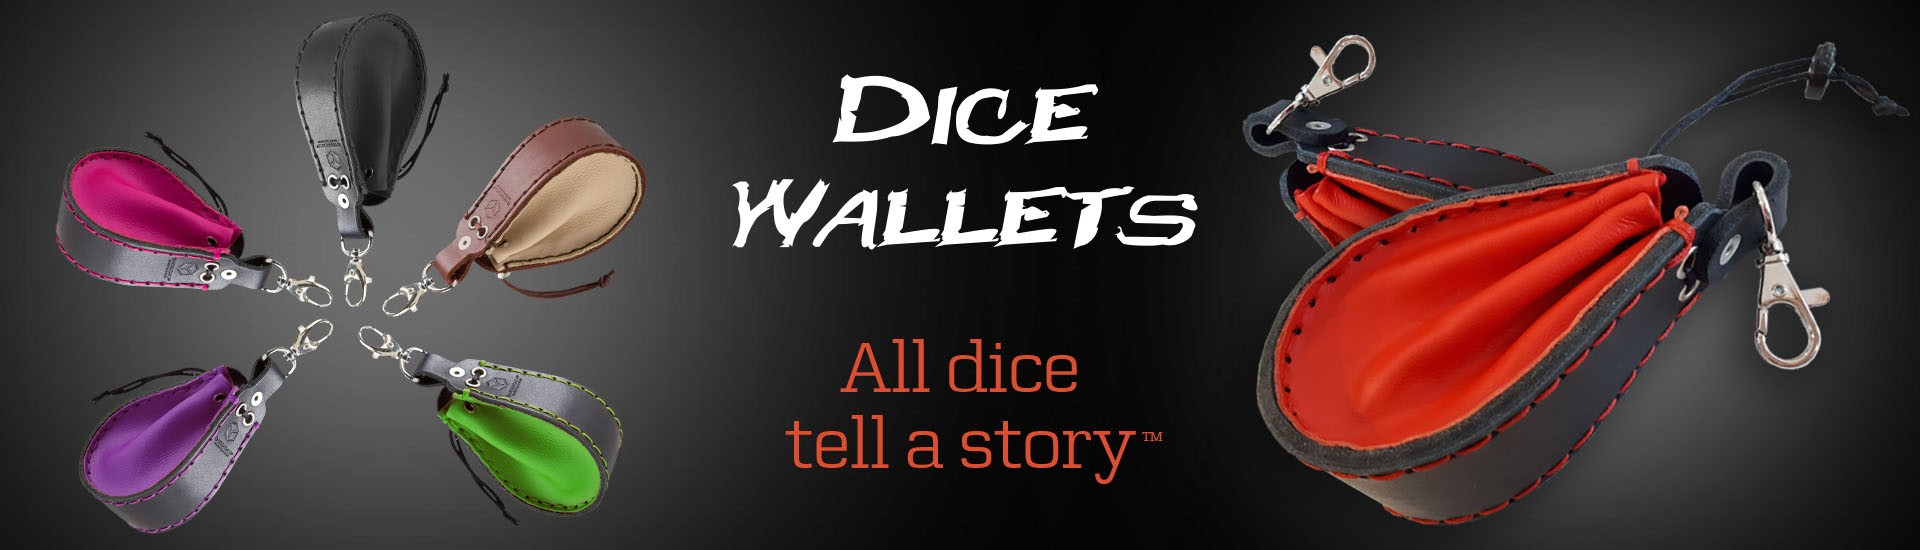 Dice Wallets